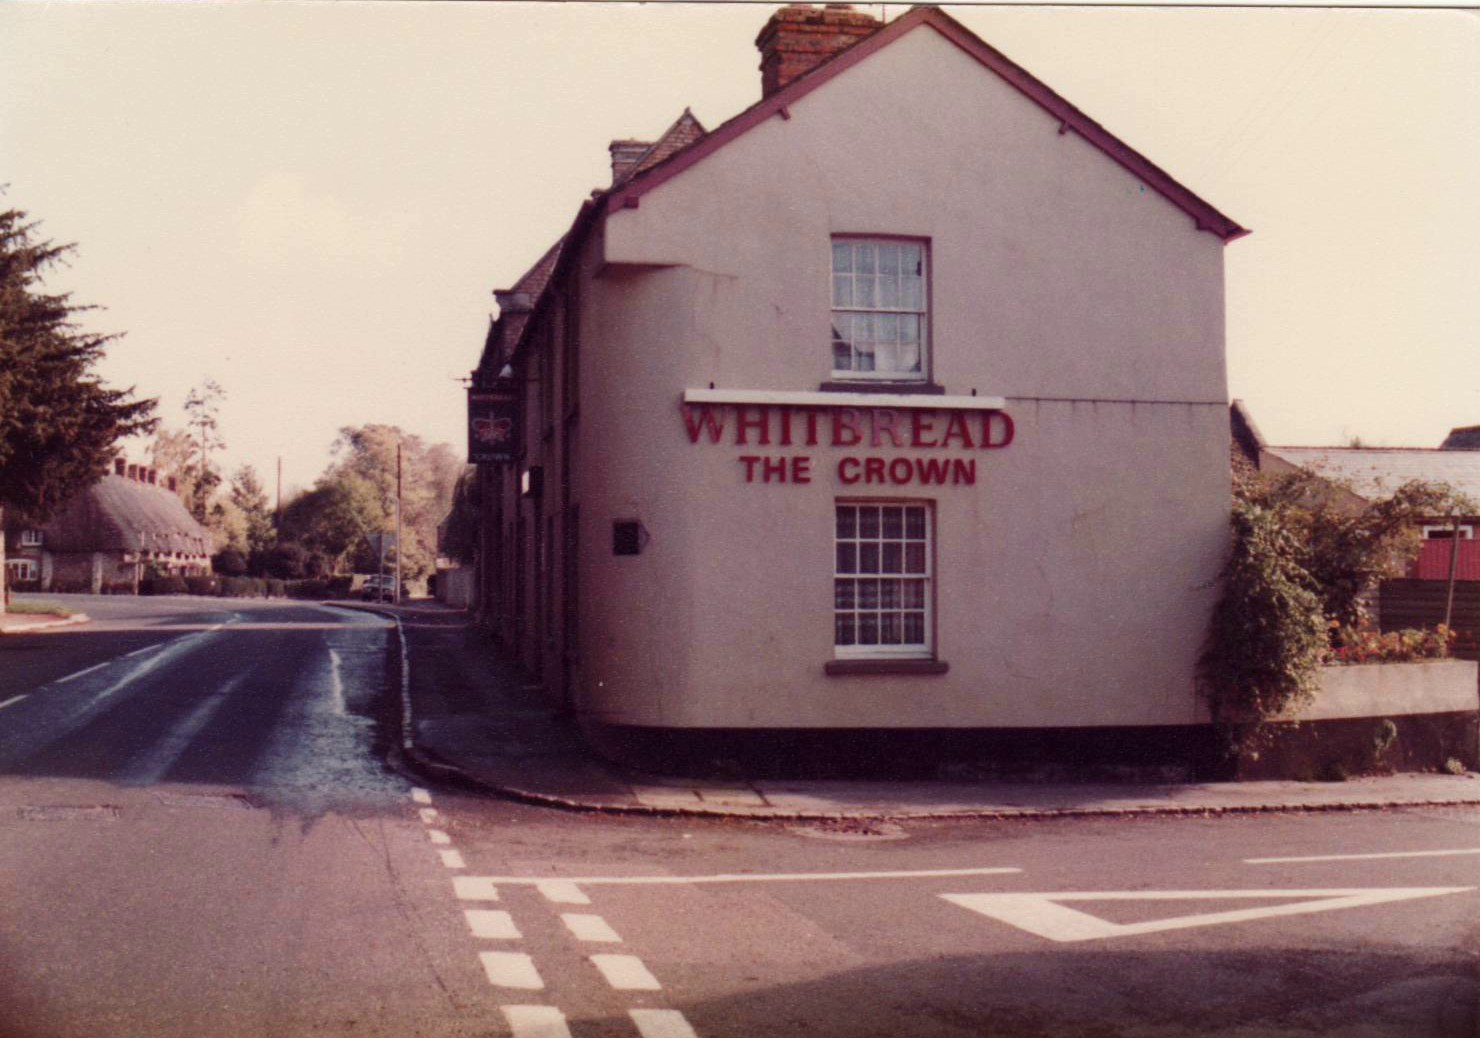 The Crown in the 1970s. Photo taken by the late Roy Selwood